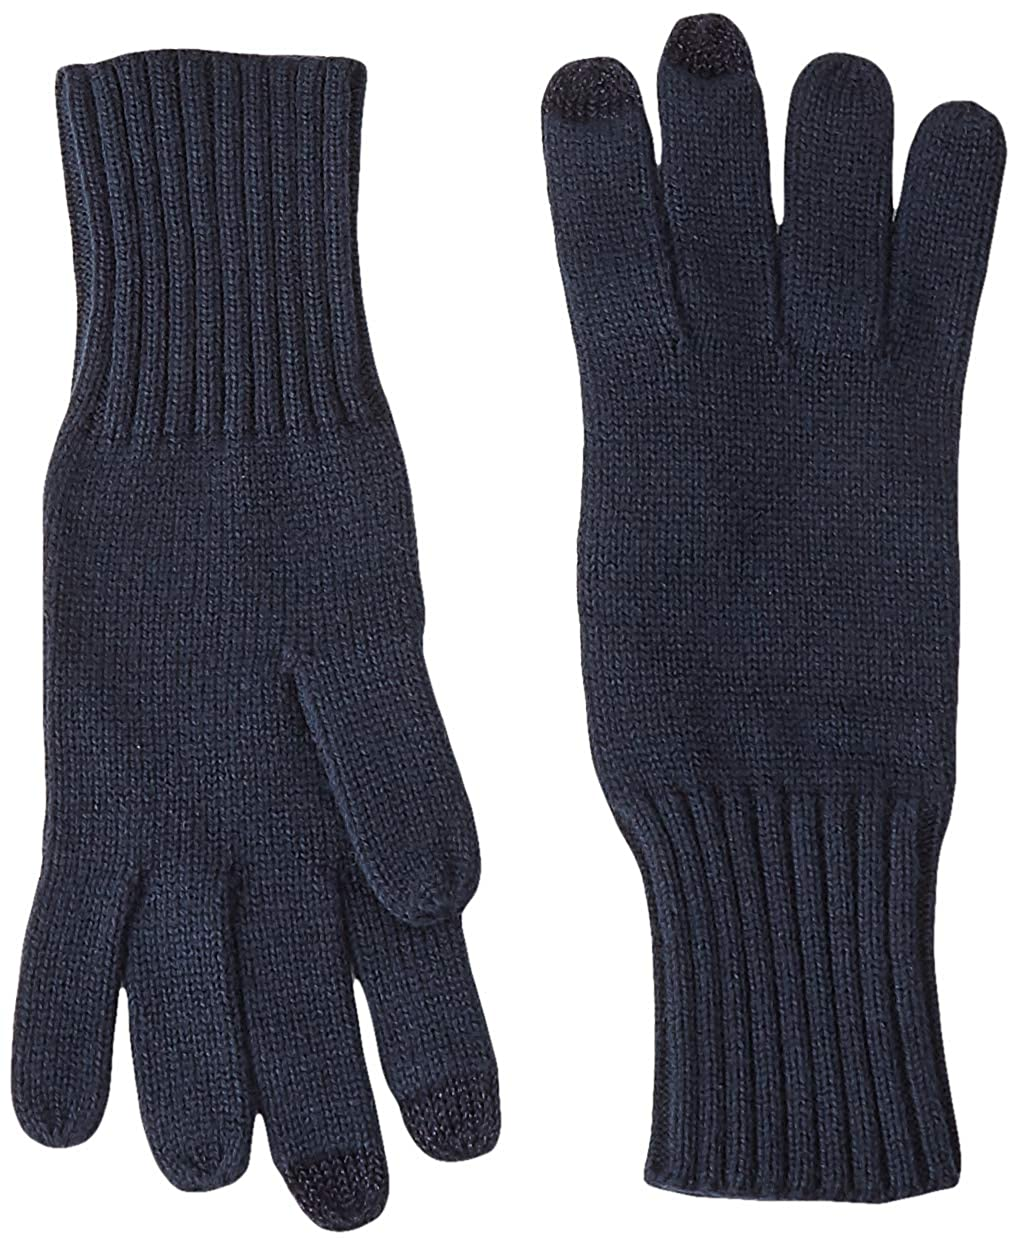 Tommy Hilfiger Soft Knit Gloves Guantes, Azul (Tommy Navy 413), única (Talla del Fabricante: OS) para Mujer